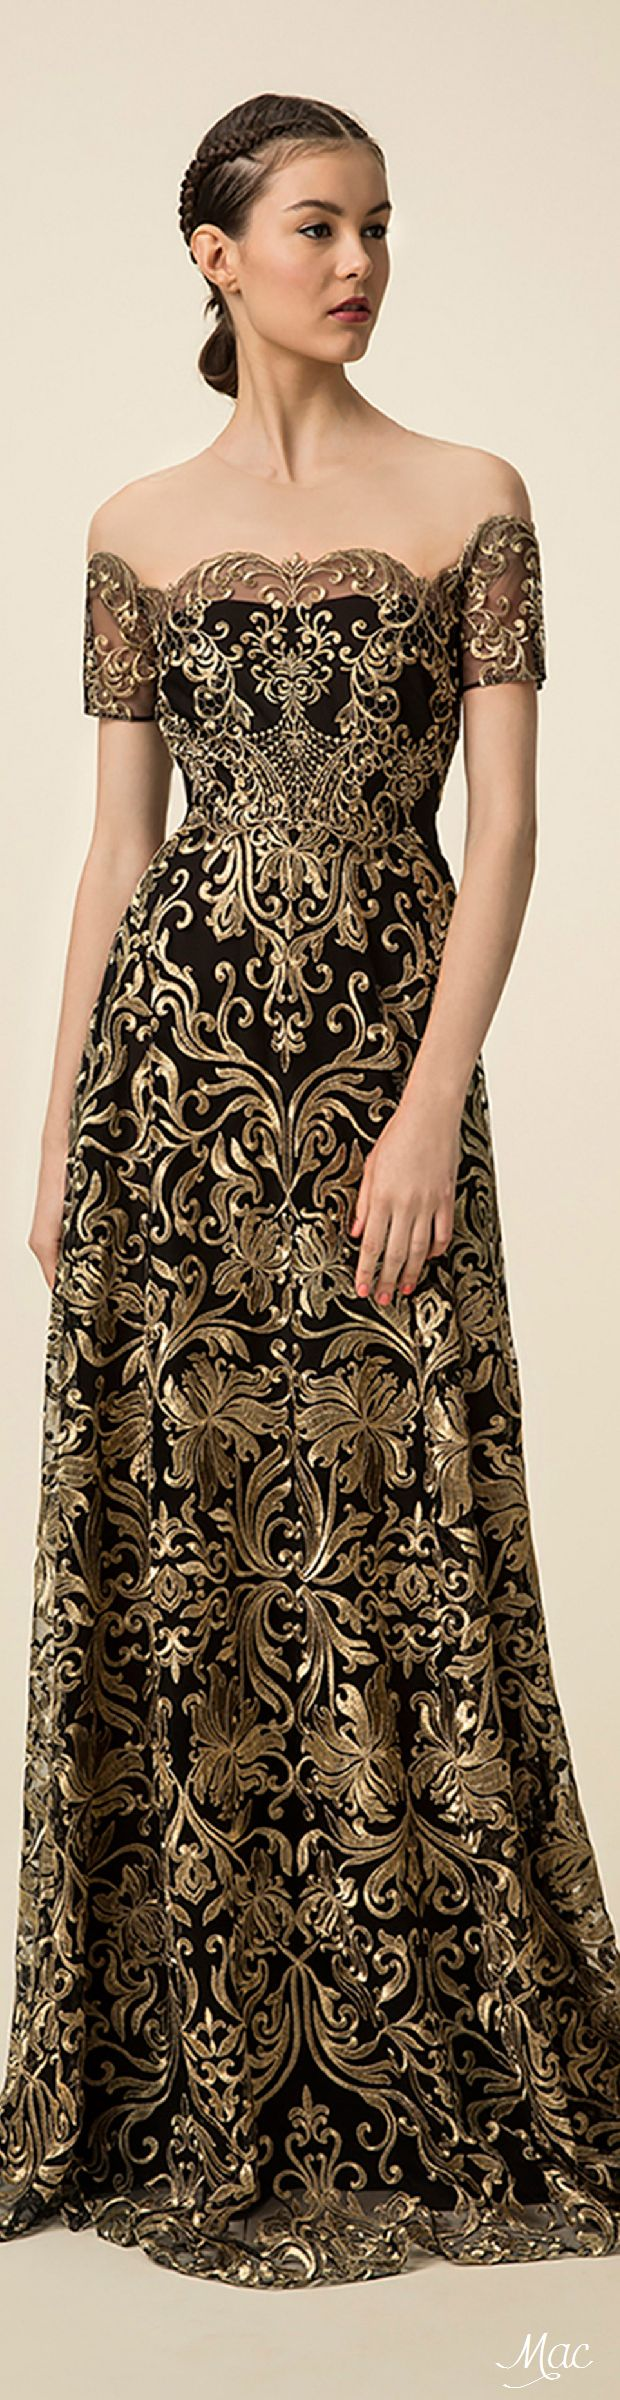 Black dress gold lace - Marchesa Notte Spring 2016 Ready To Wear Fashion Show Gold Gowngold Dresscourt